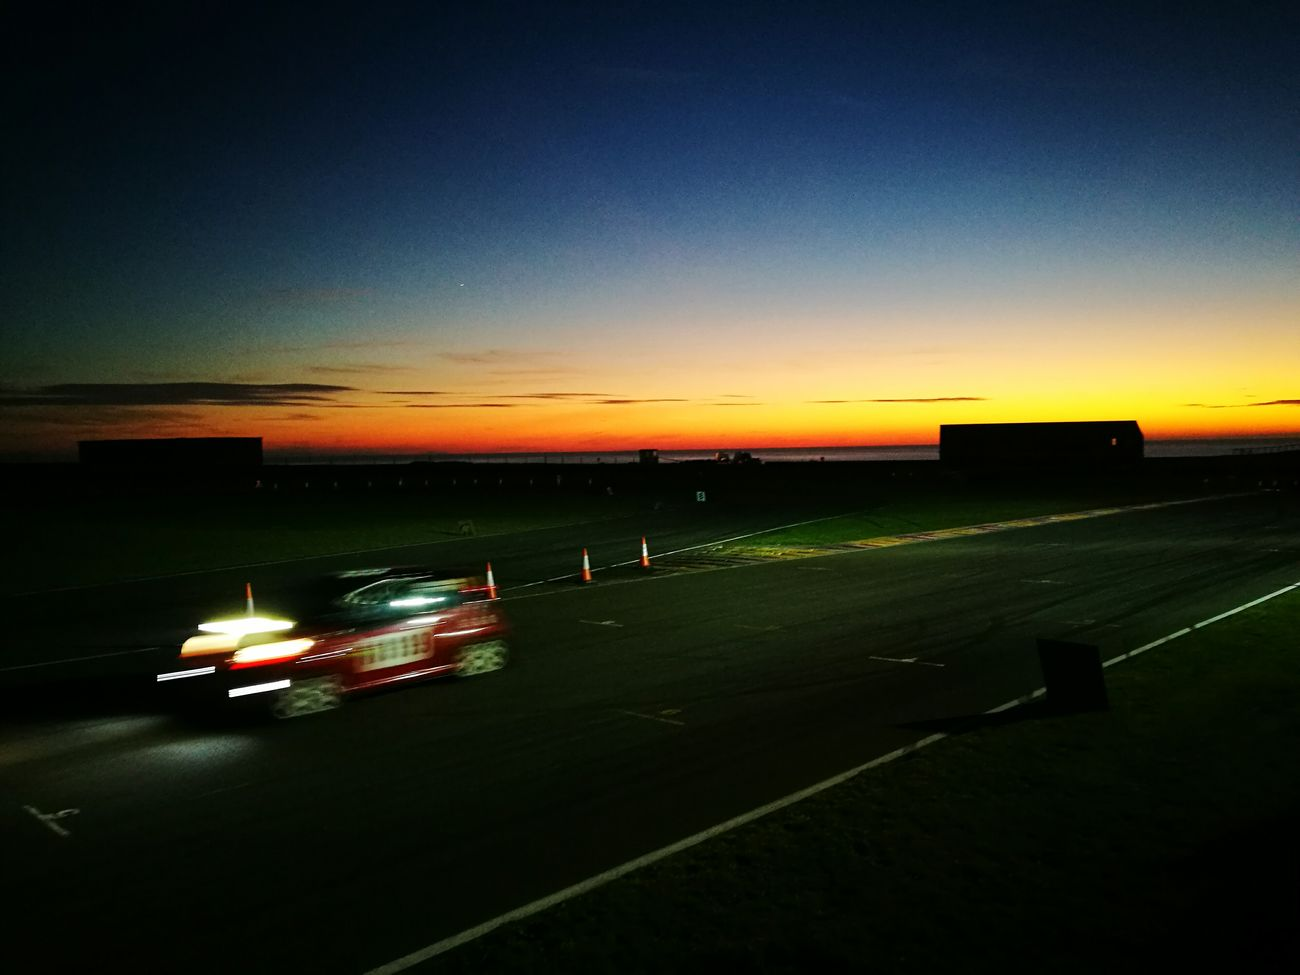 Sunset Outdoors Sky Night Motorsport Rally Car Rally Motion Blur Beauty In Nature Nature Scenics No People Nautical Vessel